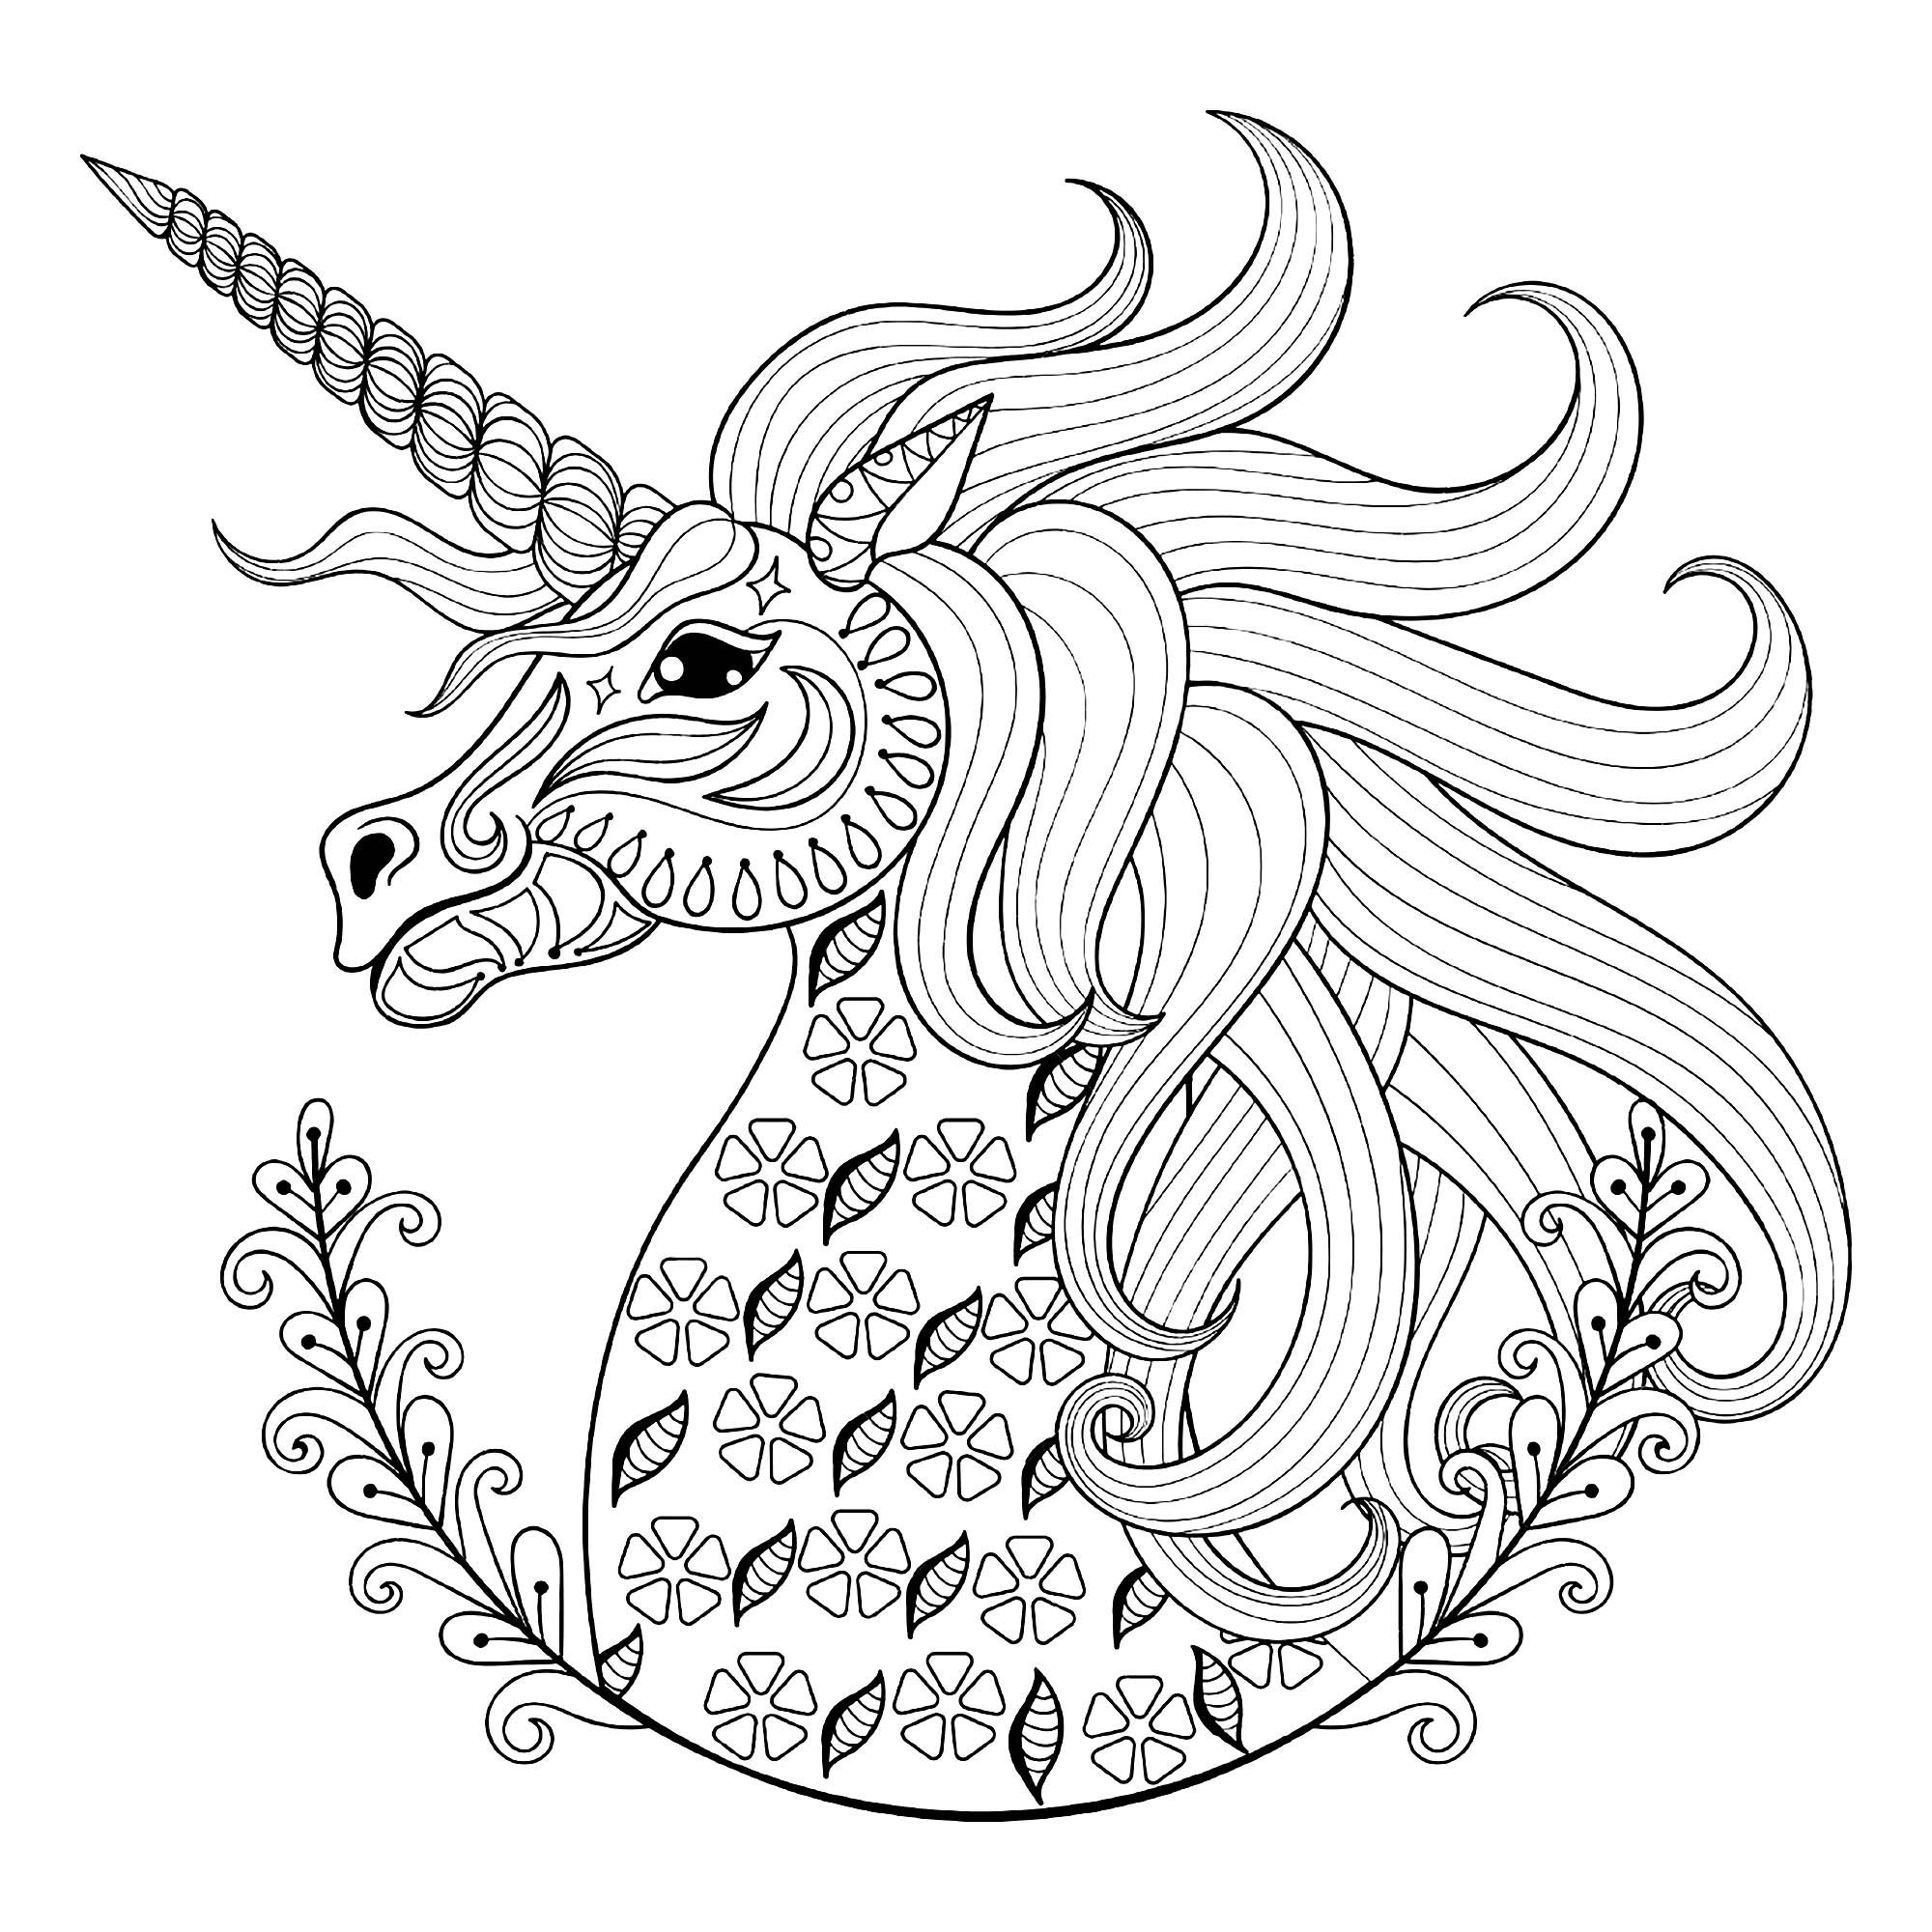 Unicorn S Head With Simple Floral Patterns Artist Ipanki Unicorn Coloring Pages Animal Coloring Pages Stress Coloring